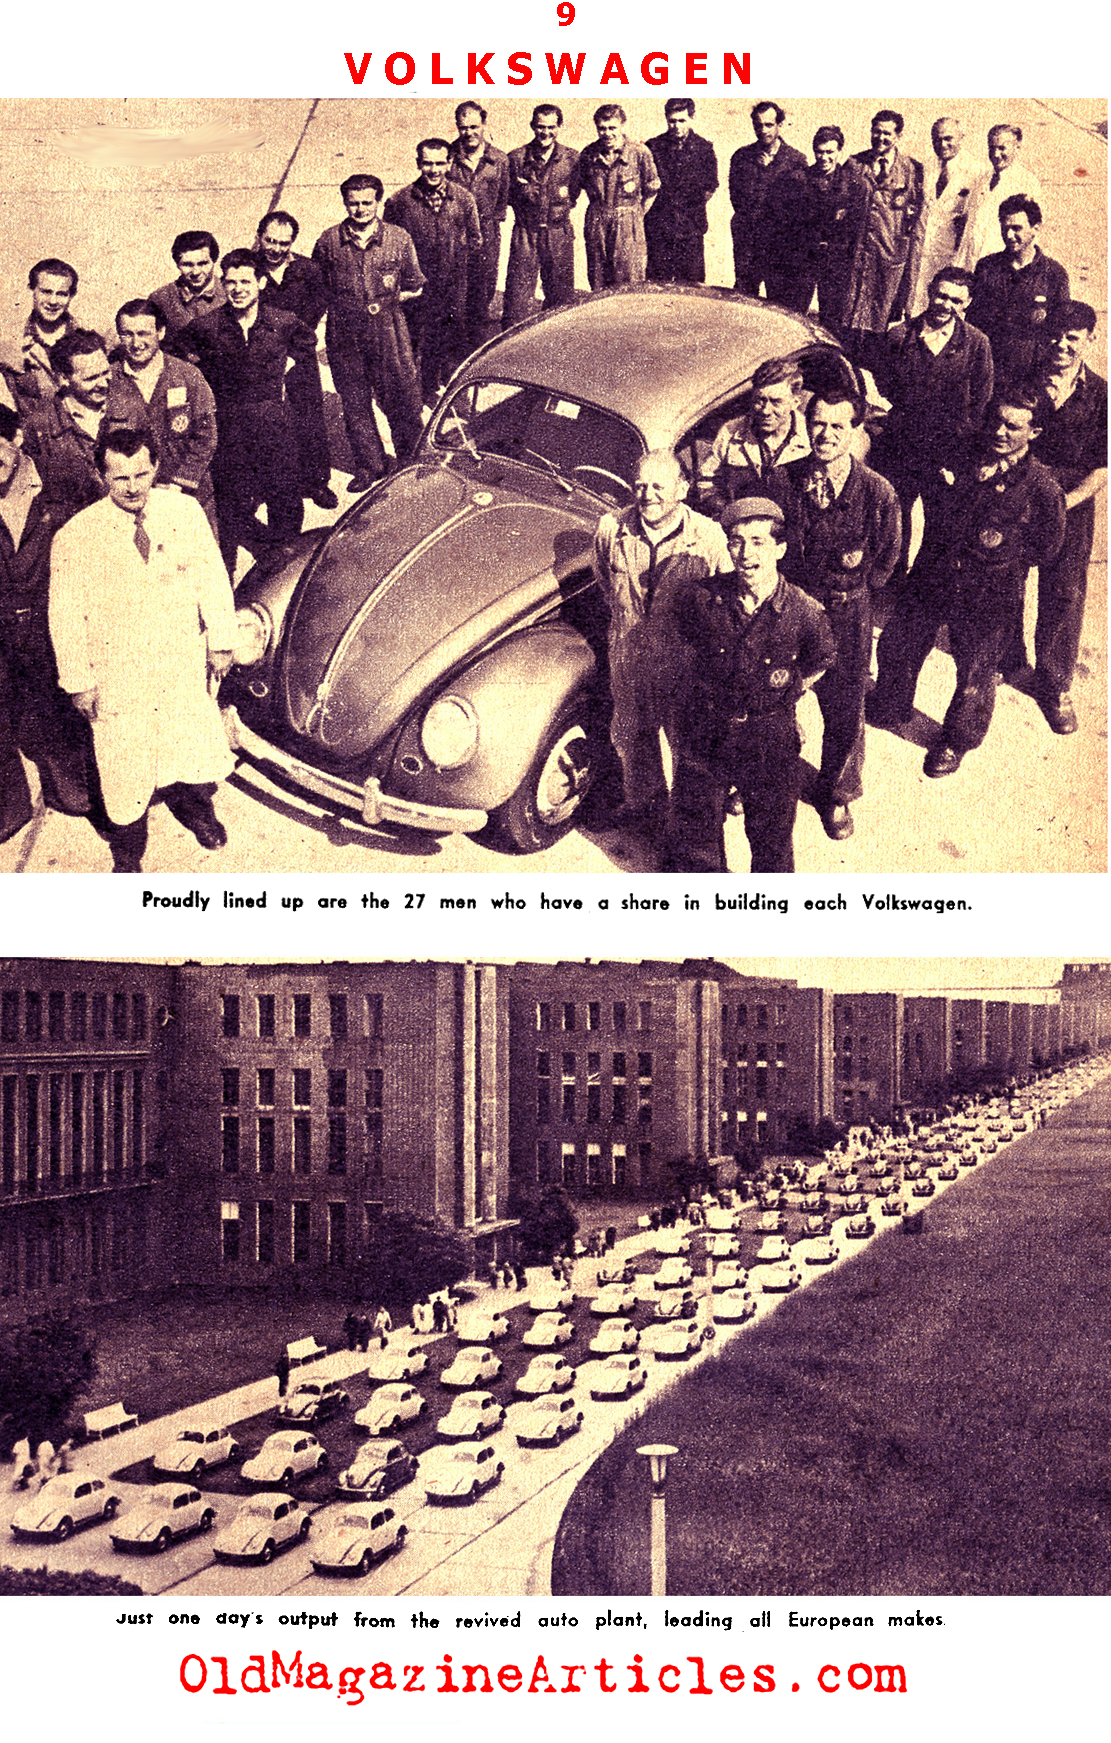 The Post-War Miracle that was Volkswagen  (Pic Magazine, 1955)